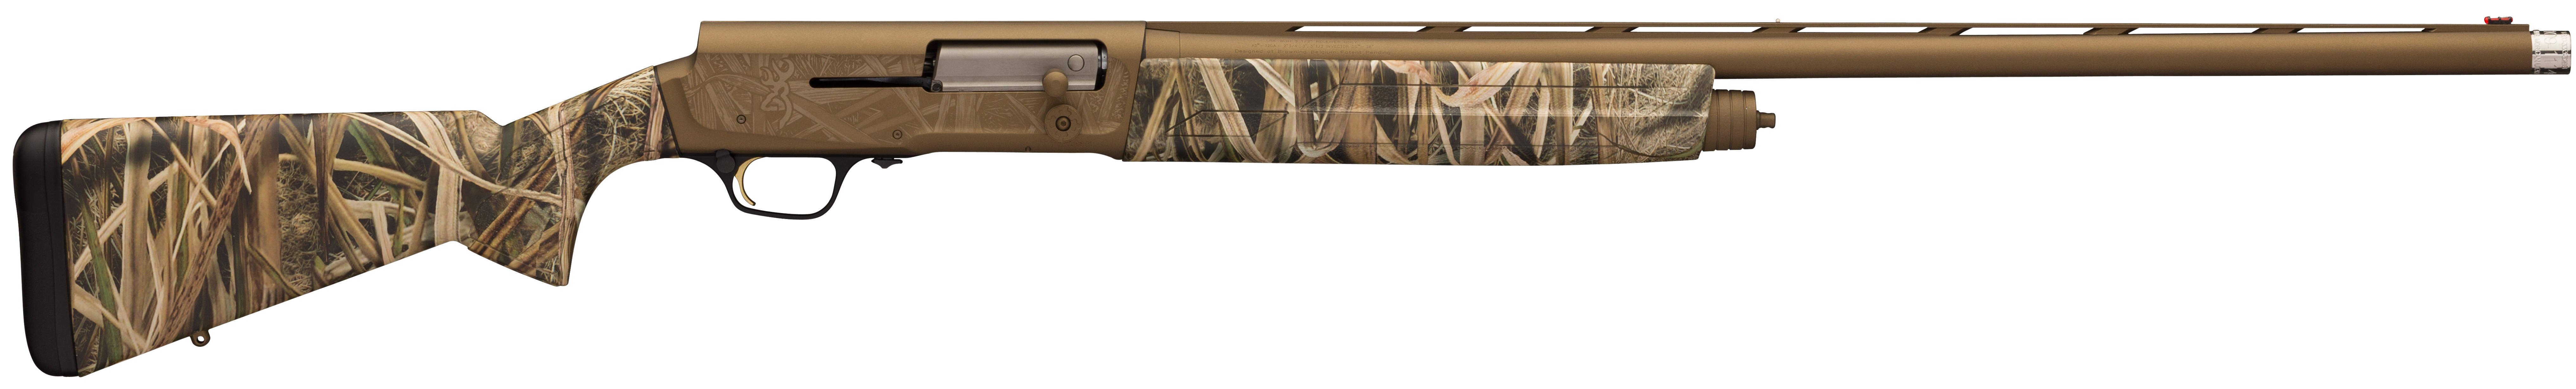 Browning A5 Wicked Wing Semi-Auto Shotgun 3'' 12 Gauge 28'' Burnt Bronze Cerakote - Synthetic - Mossy Oak Shadow Grass Blades